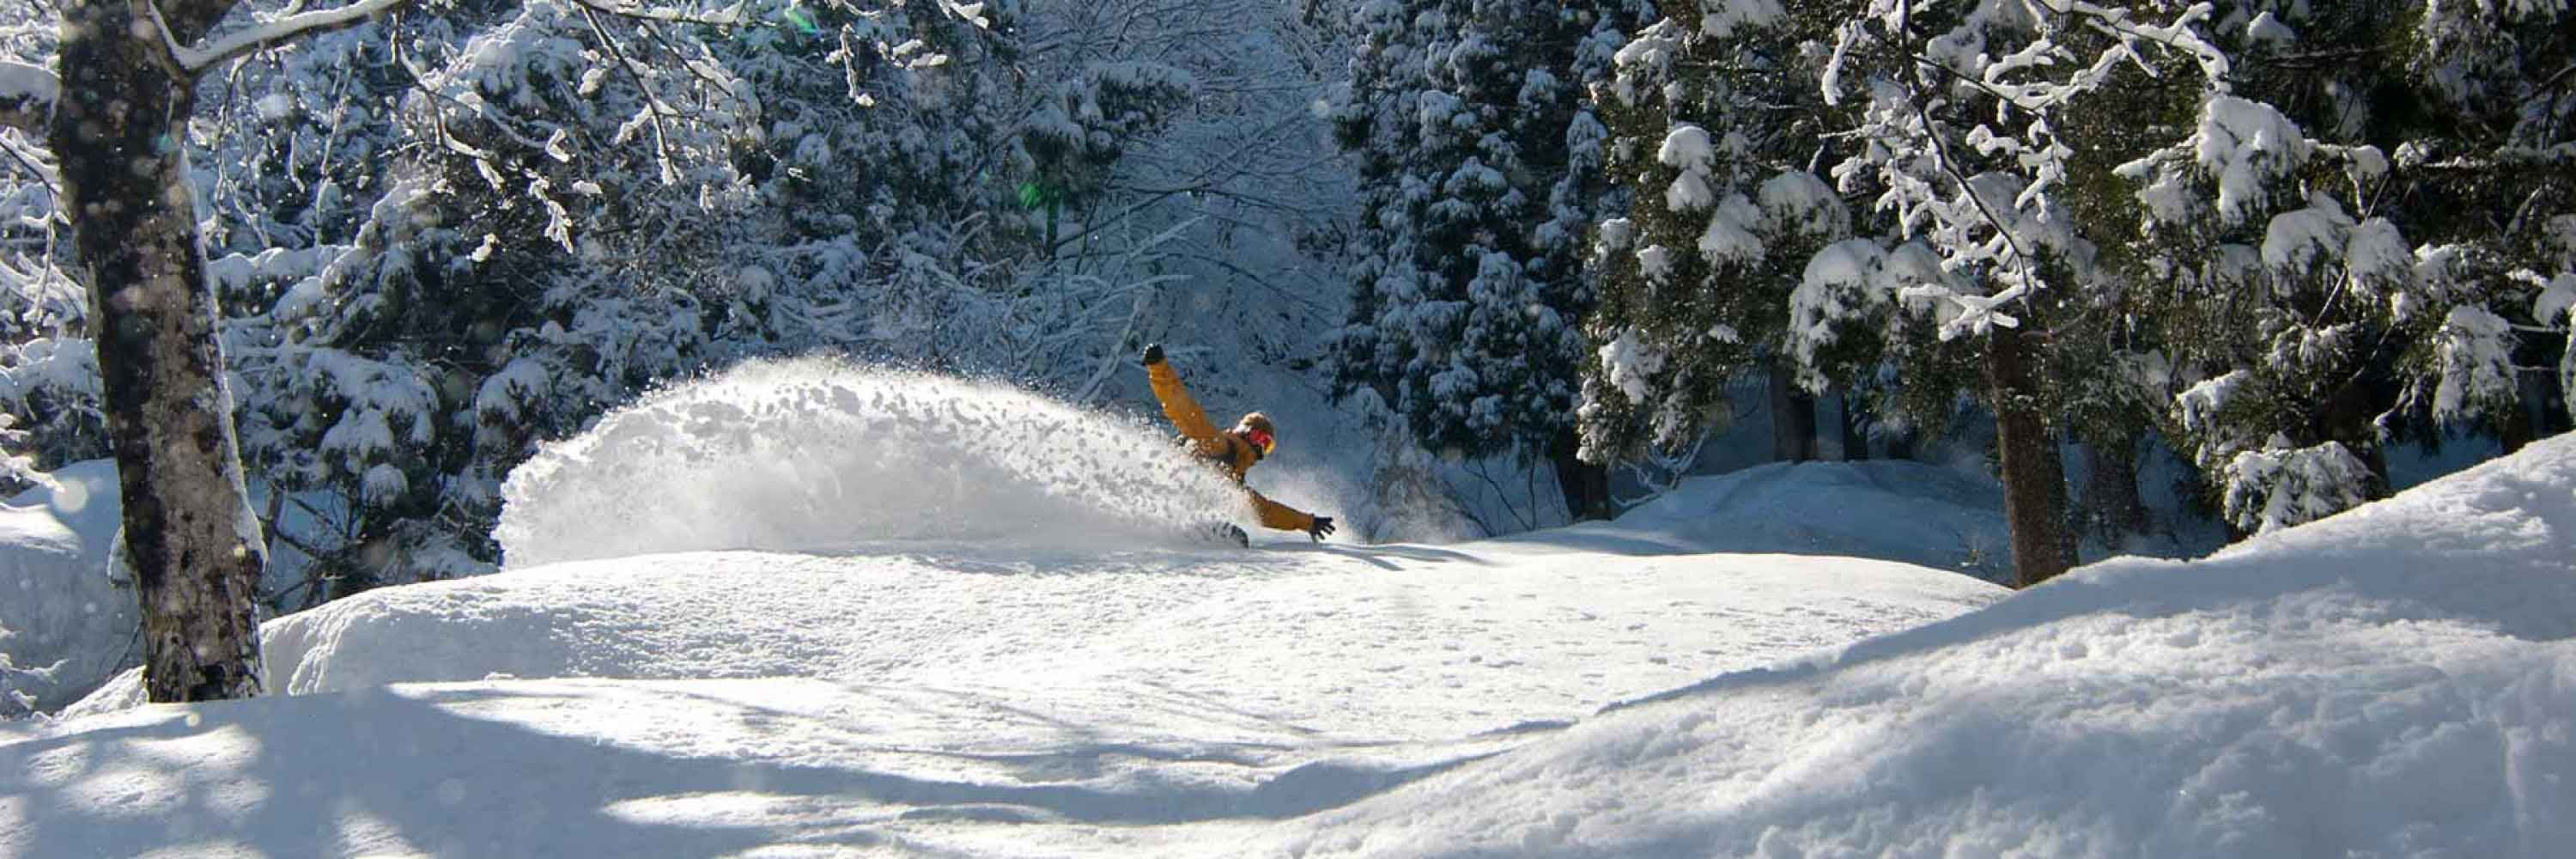 face shots for days in hakuba